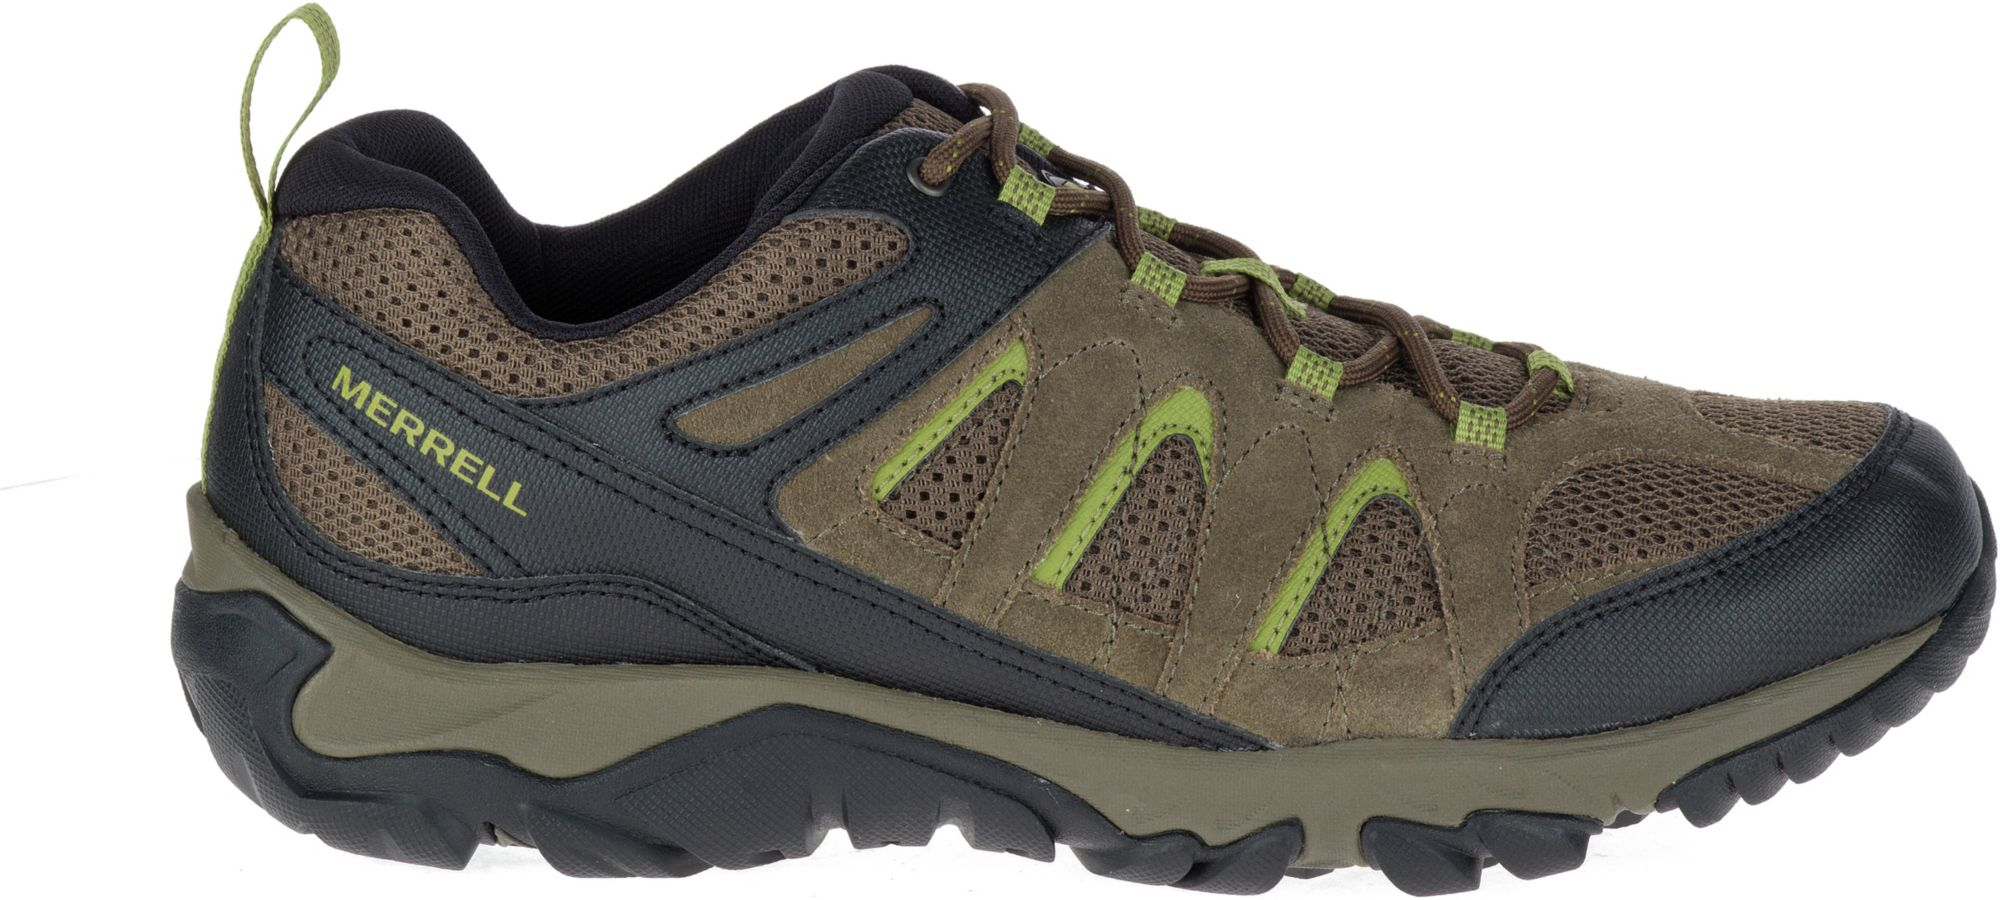 Nicekicks Online Many Kinds Of Merrell Outmost Vent (Boulder) Mens Shoes Buy Cheap Purchase Classic Cheap Price nIbFJagY